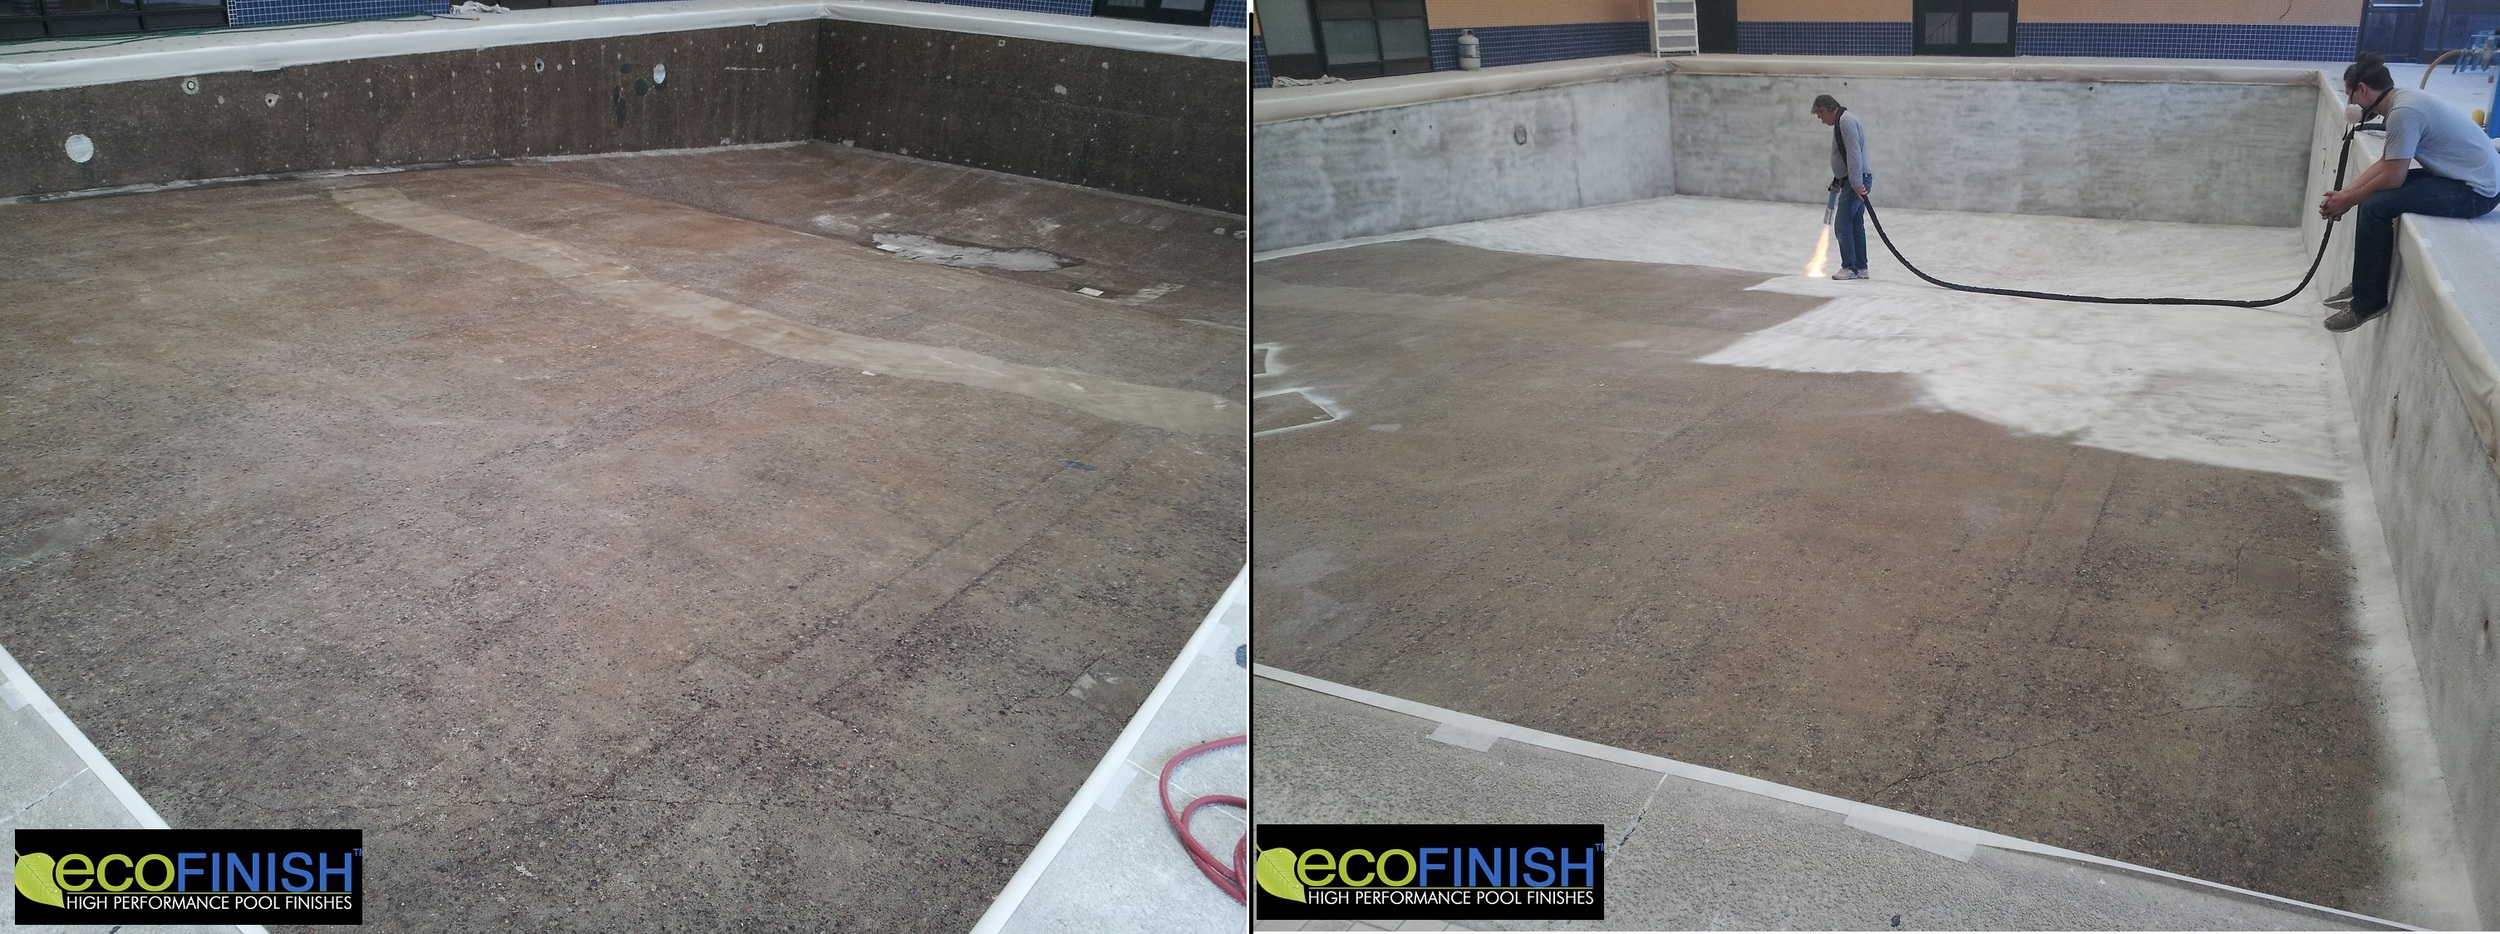 Photo to left shows epoxy application completed.  Photo to right shows ecoFinish flock coat process with 2 person crew